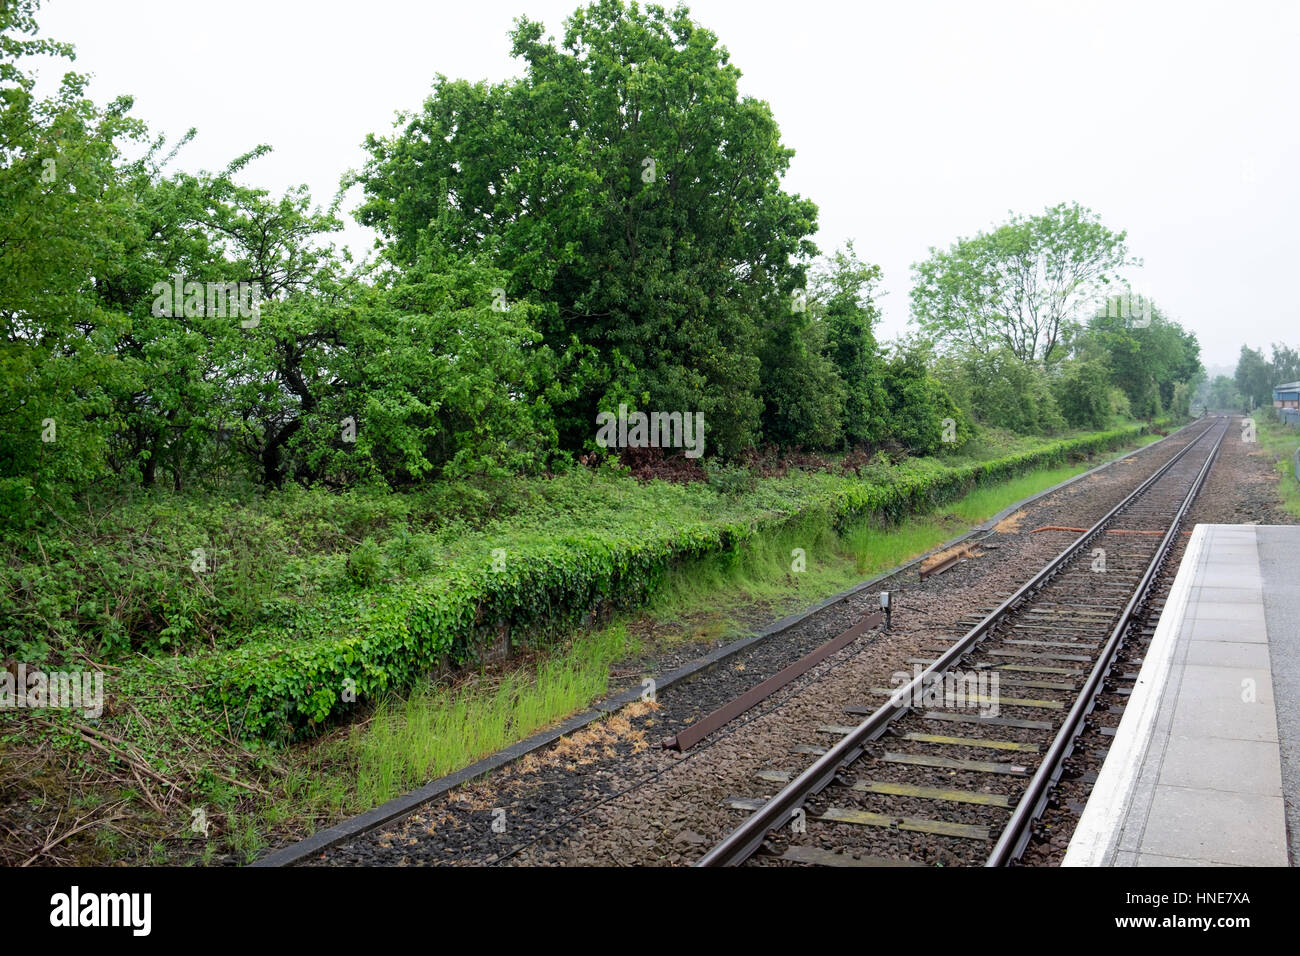 Overgrown unused railway platform at Melton on the single track Lowestoft to Ipswich East Suffolk branch line. - Stock Image